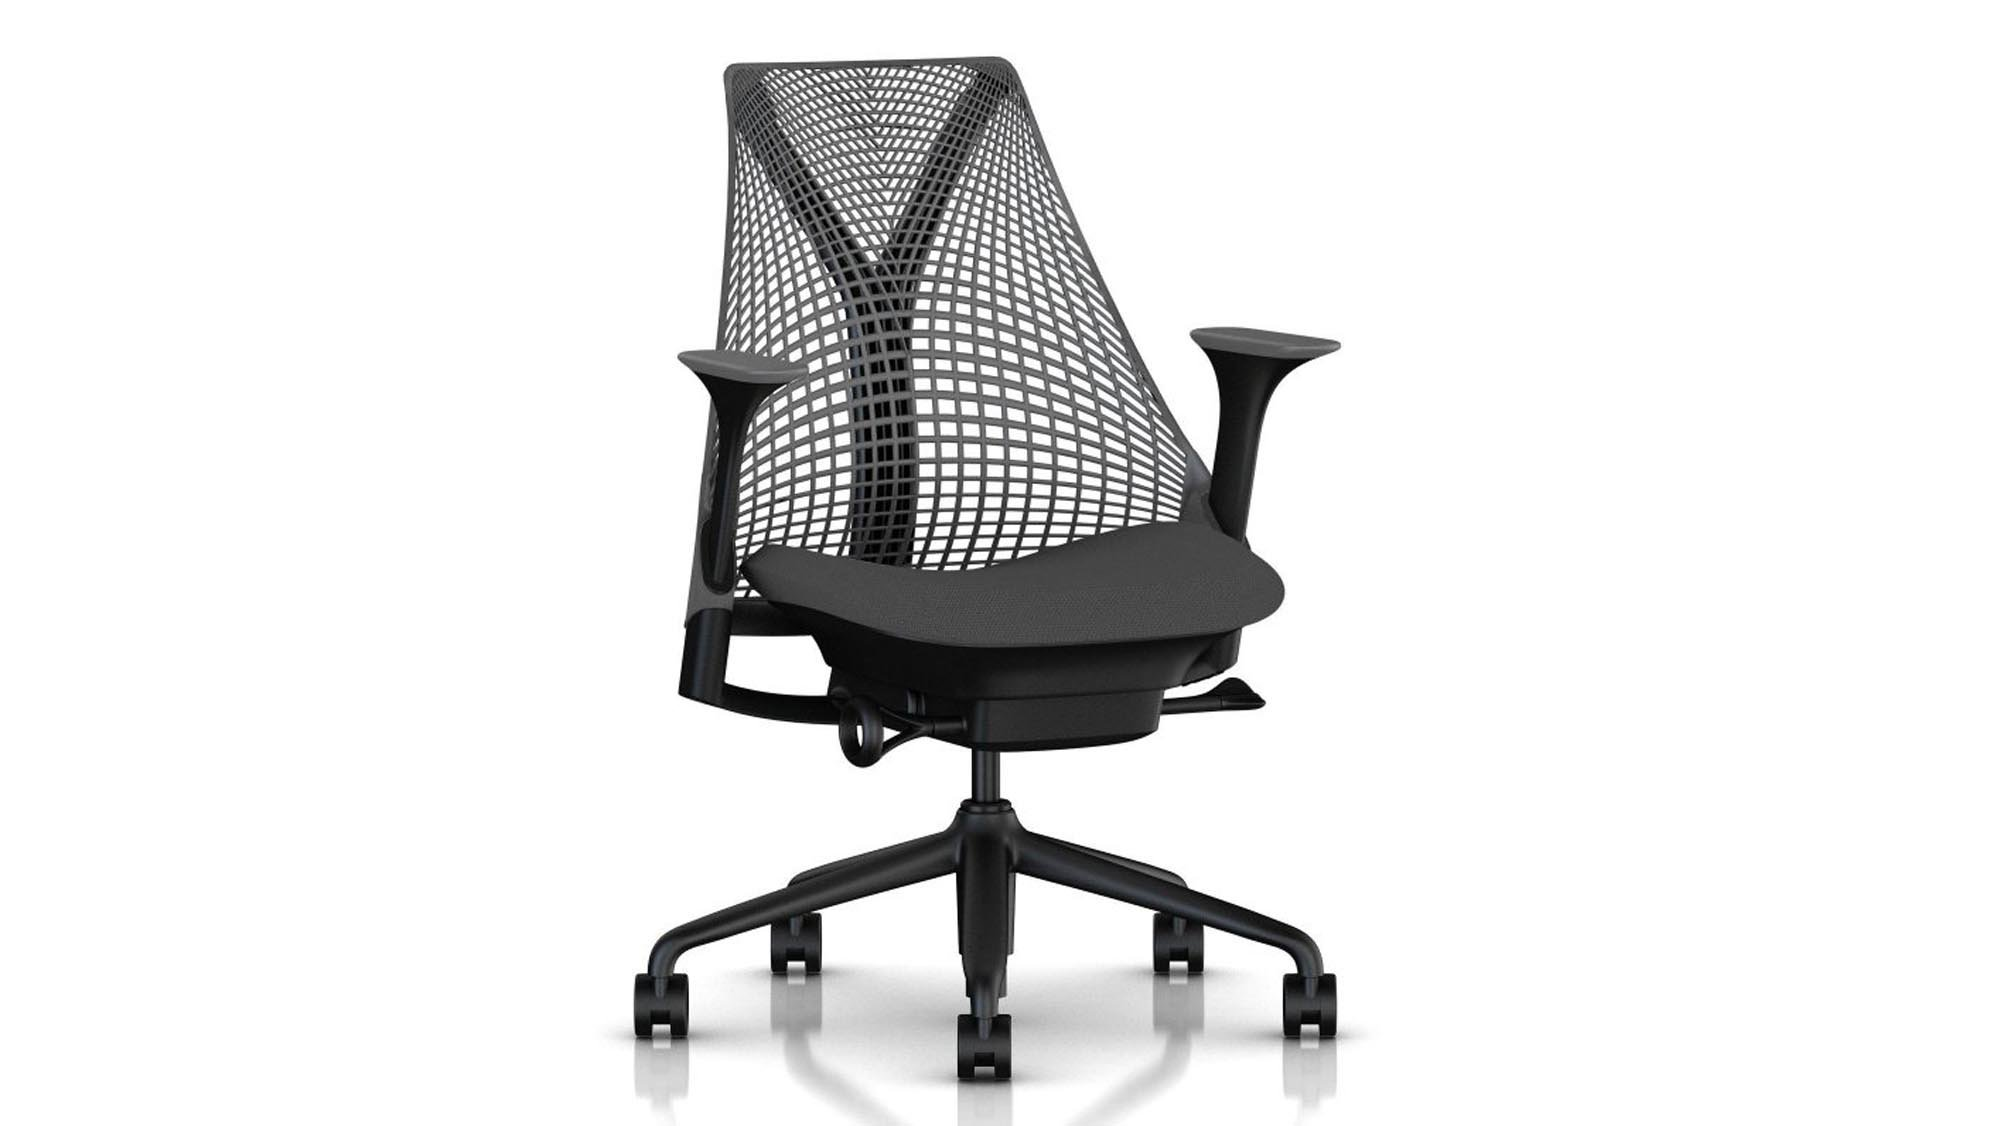 Yves Behar Is One Of The Coolest Designers Thatu0027s Ever Lived And Many Argue  This Lightweight, Ergonomically Designed And Highly Customisable Chair Is  His ...